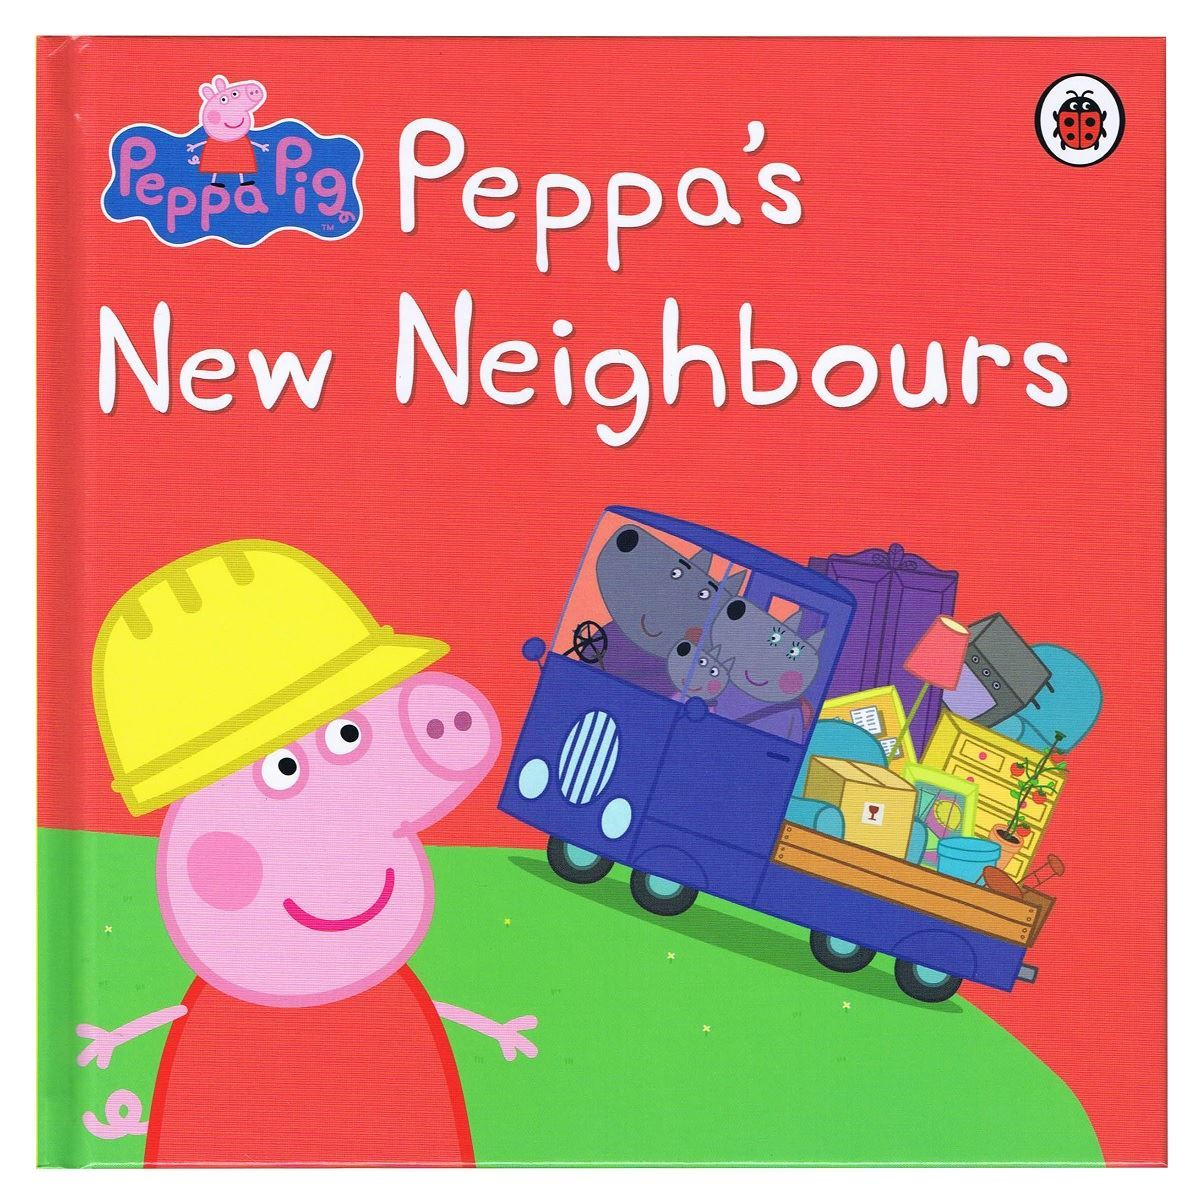 Peppa Pig – Peppa's New Neighbours image